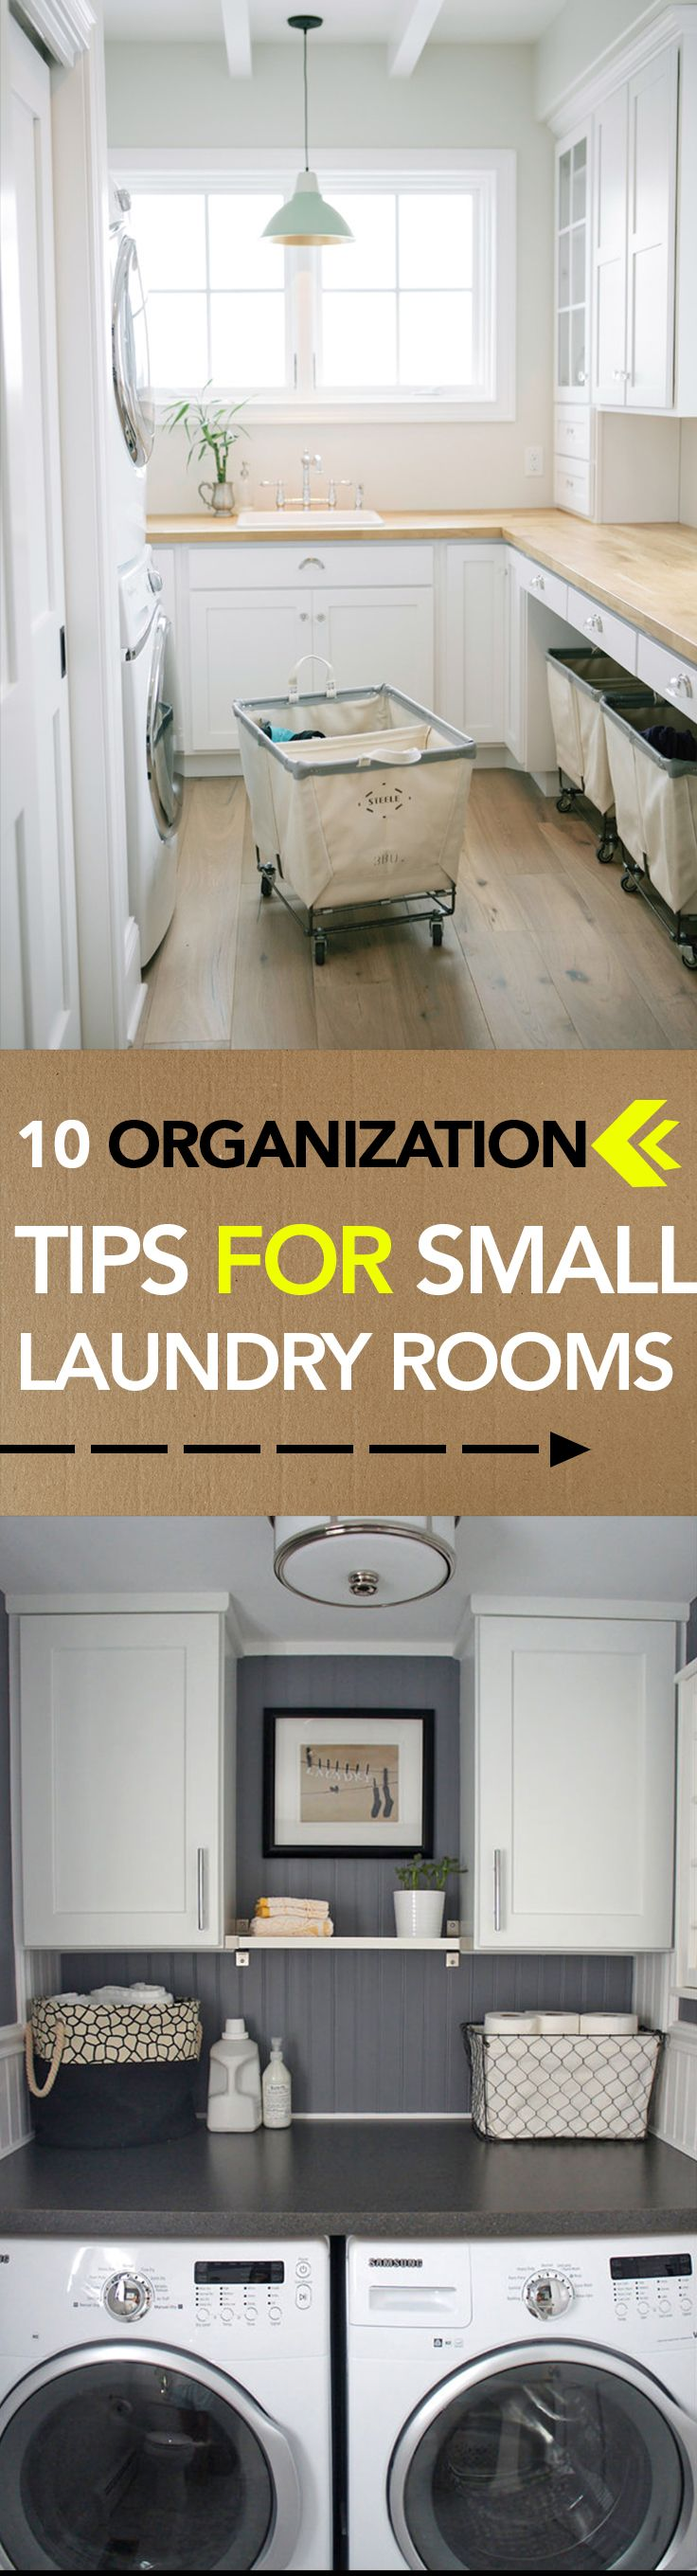 10 Organization Tips for Small Laundry Rooms